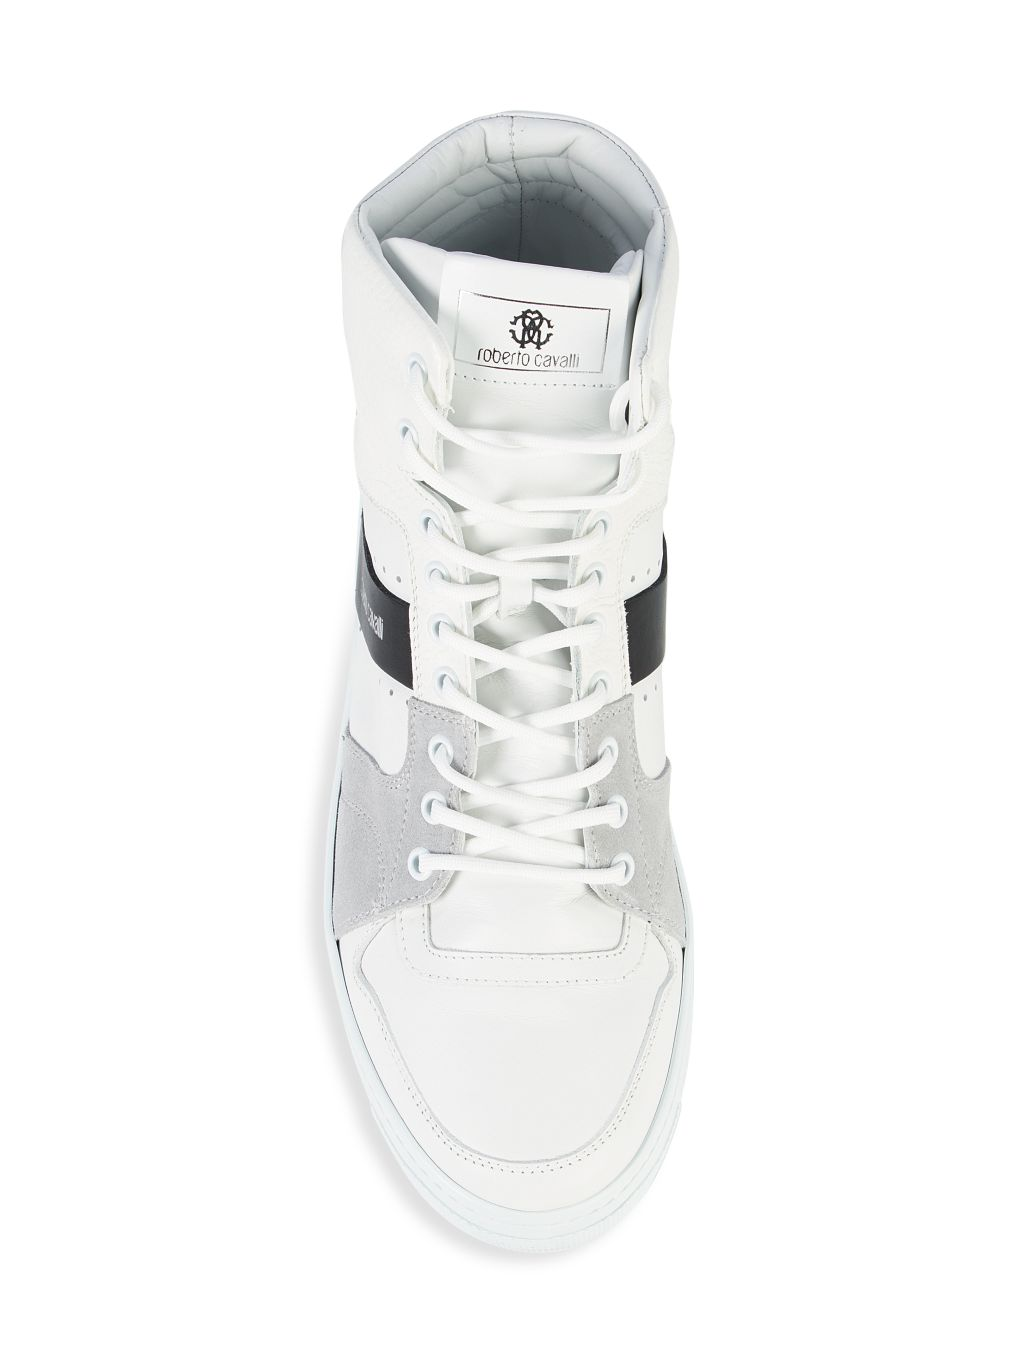 Roberto Cavalli High-Top Leather & Suede Sneakers